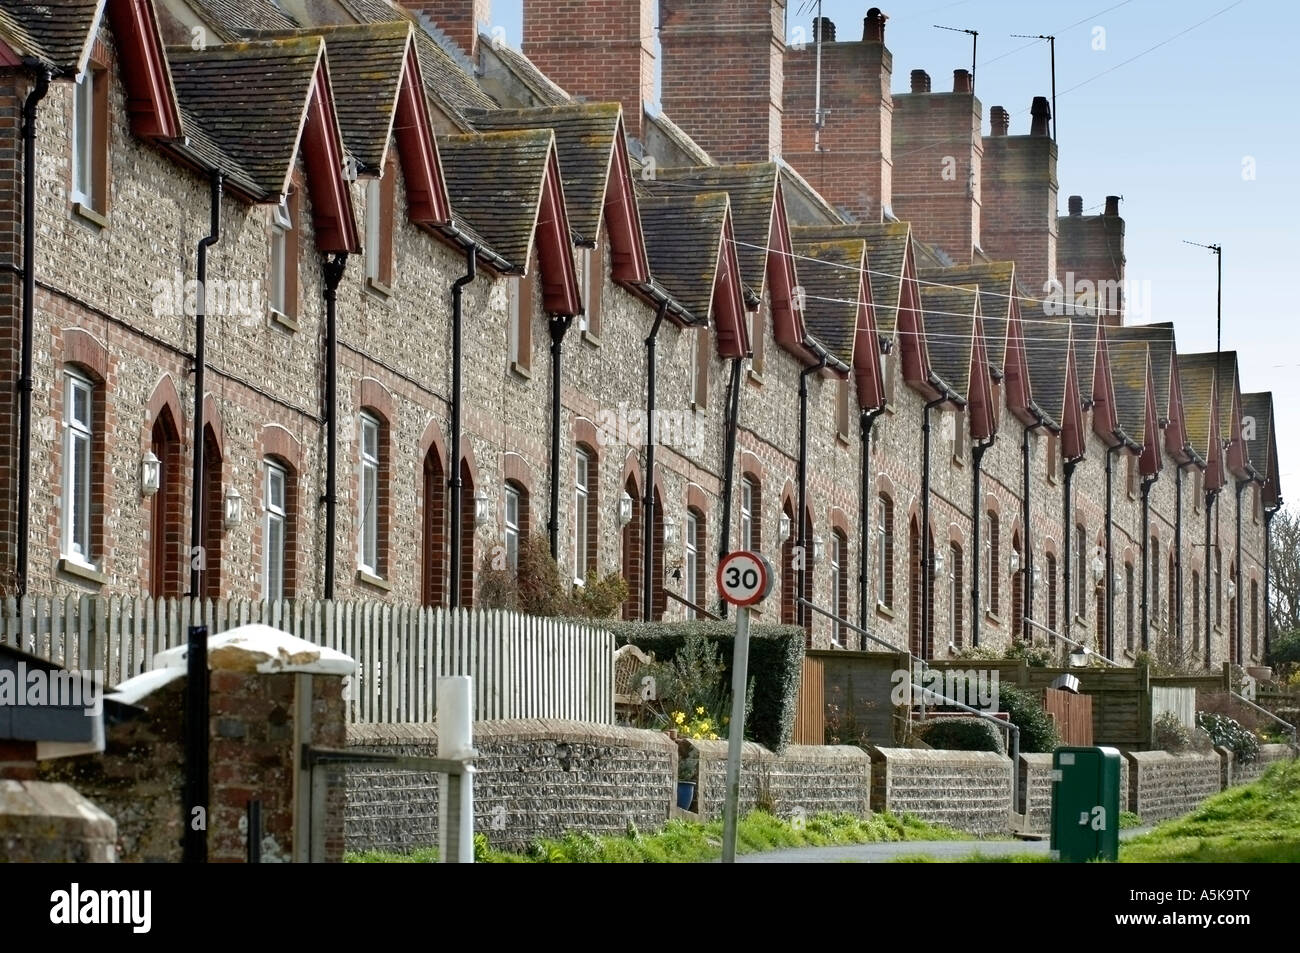 A row of flint fronted terraced houses in Glynde East Sussex - Stock Image